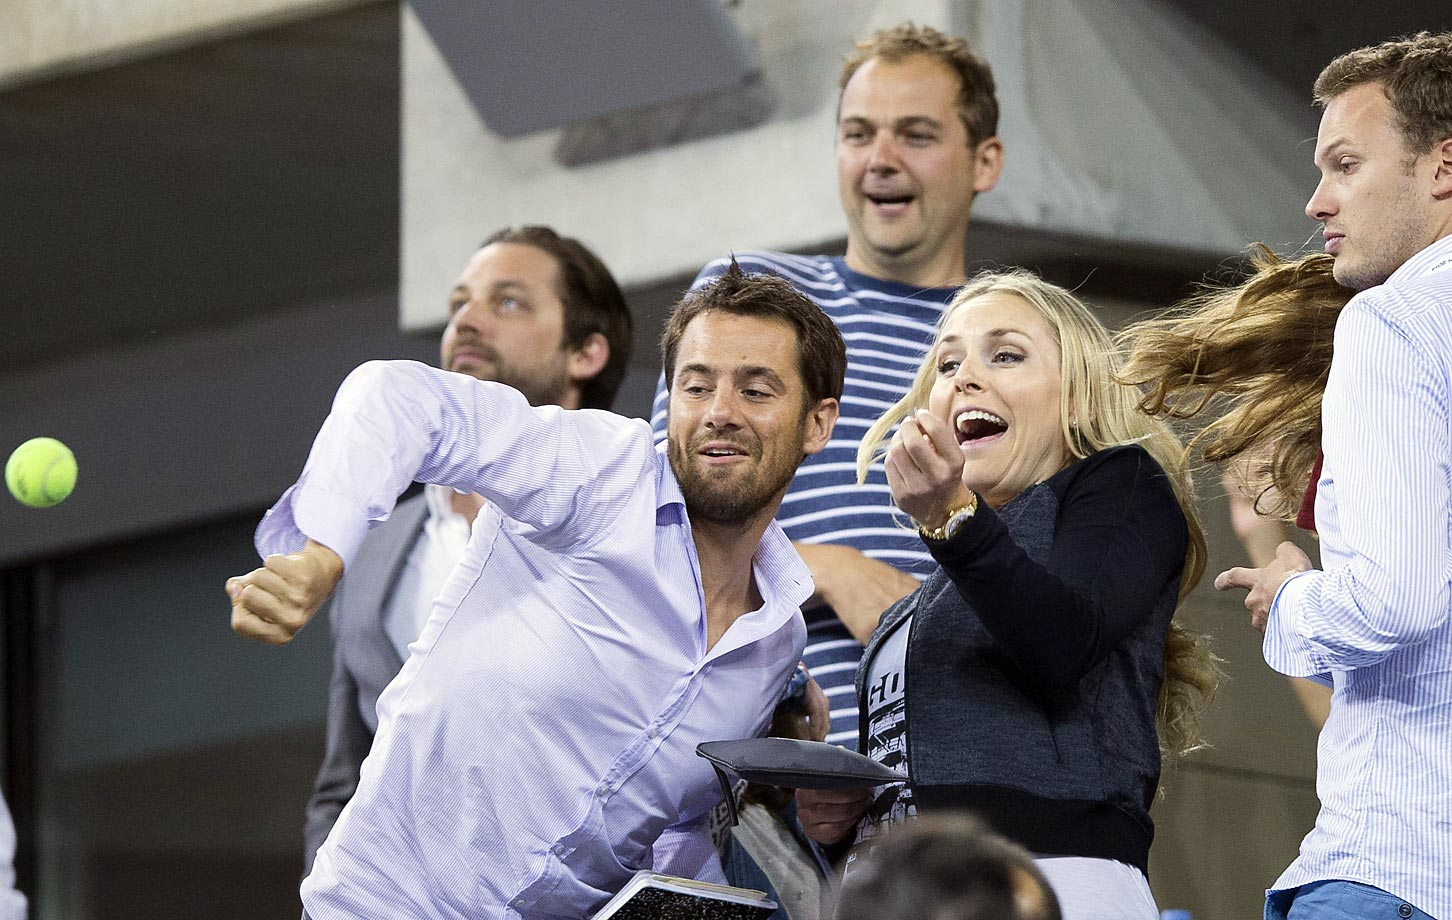 Lindsey Vonn fights for a ball hit into the crowd by Roger Federer after he defeated Gael Monfils during the ATP World Tour in September 2014.